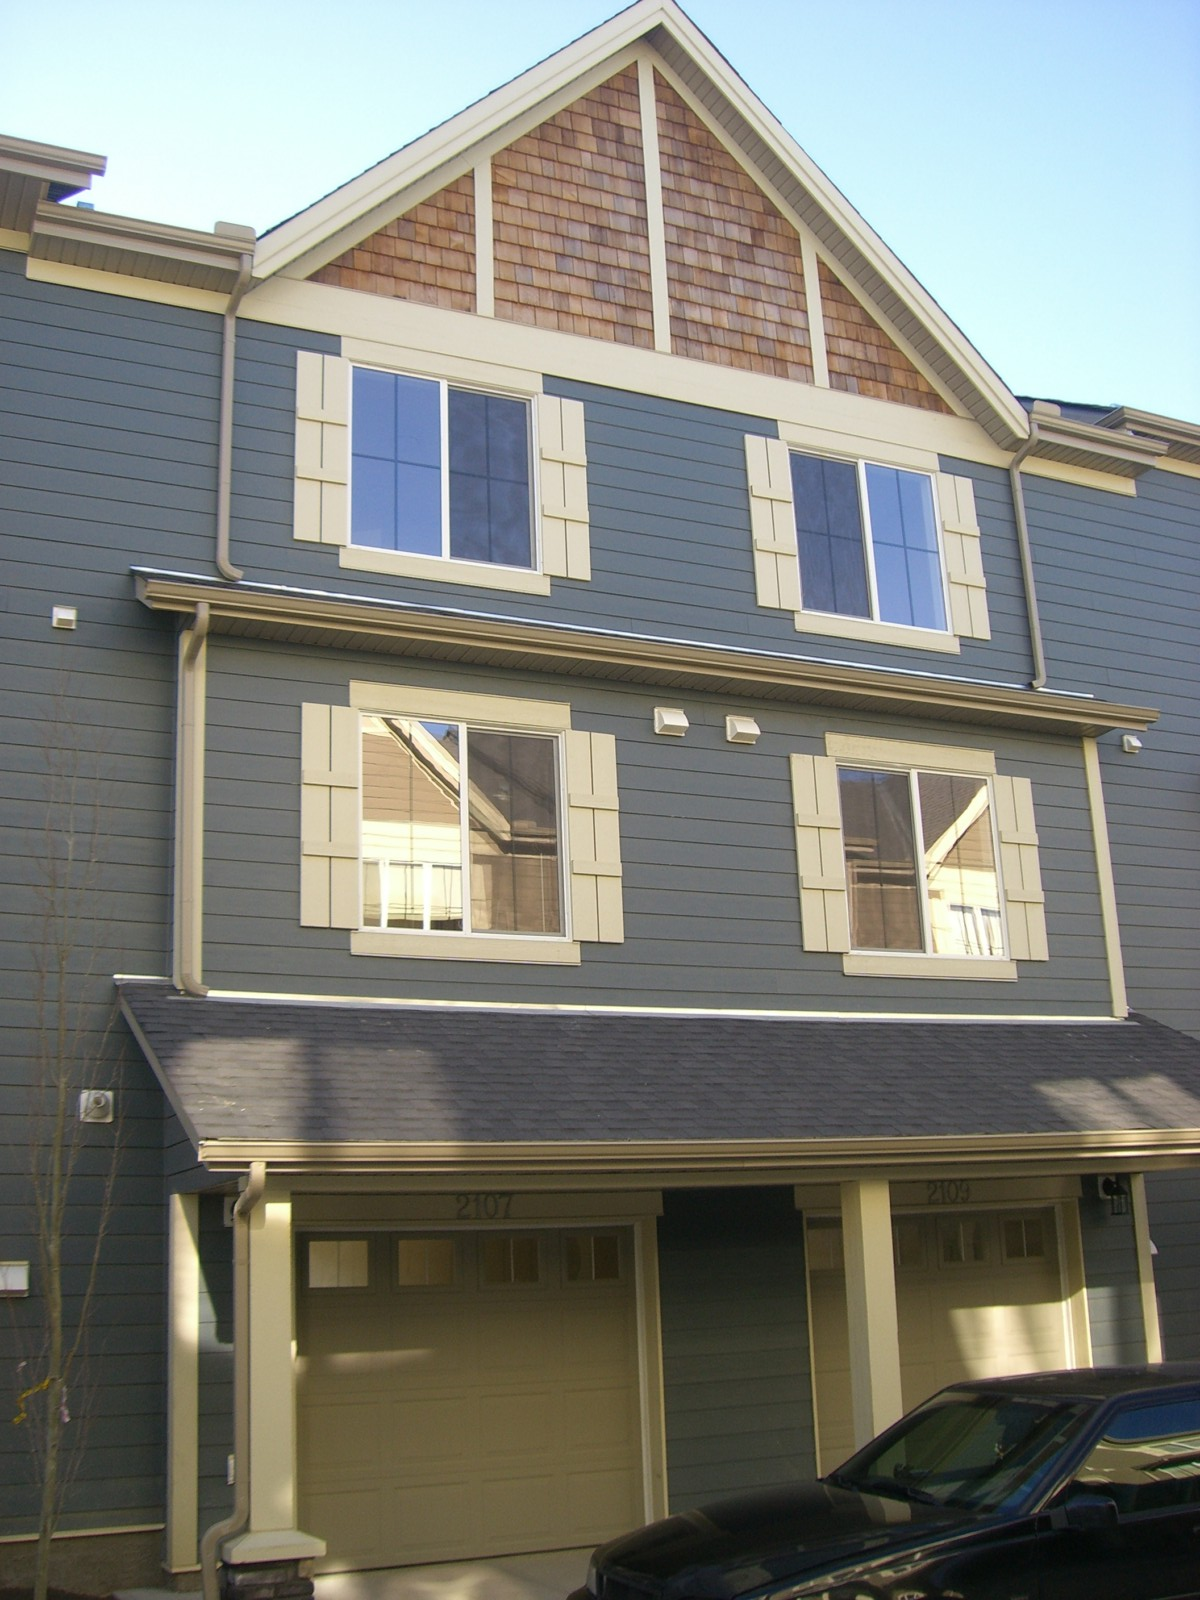 Welcome to this beautiful almost like new 2 bedroom townhome in Panorma!